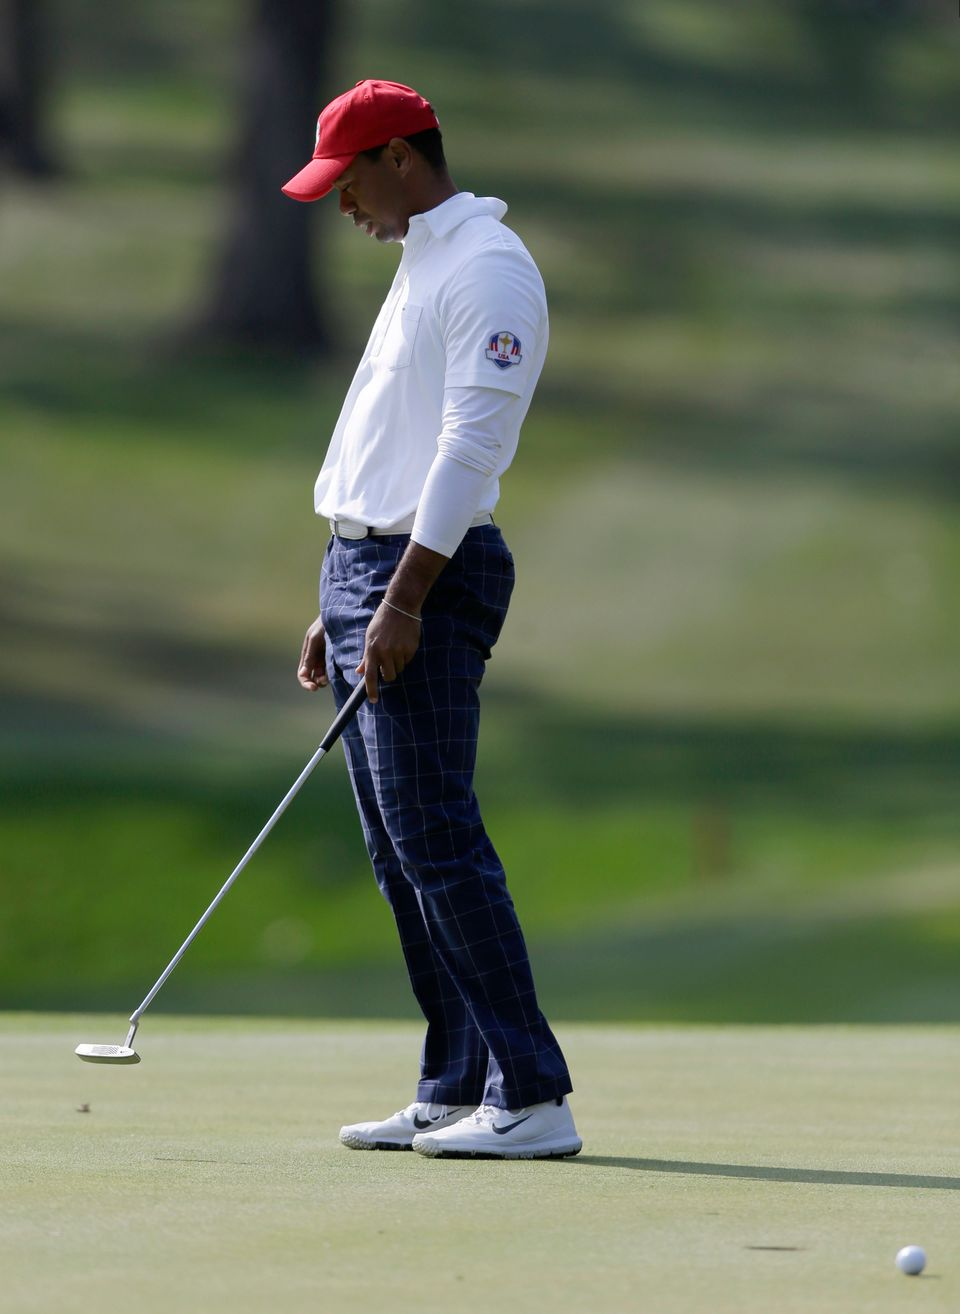 USA's Tiger Woods reacts after missing a putt on the 12th hole during a foursomes match at the Ryder Cup PGA golf tournament